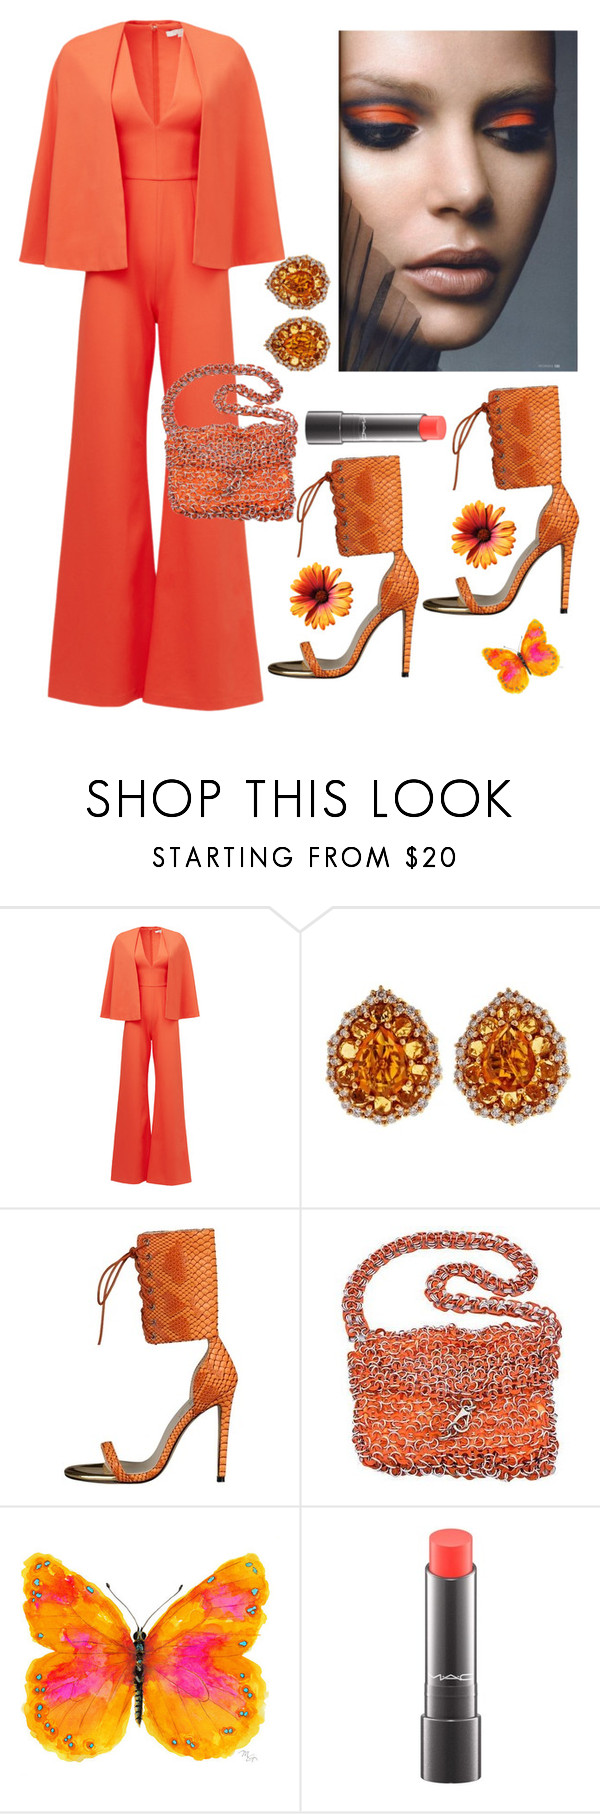 """""""Summer"""" by kotnourka ❤ liked on Polyvore featuring Alexis, Crivelli, claire's, NOVICA and MAC Cosmetics"""